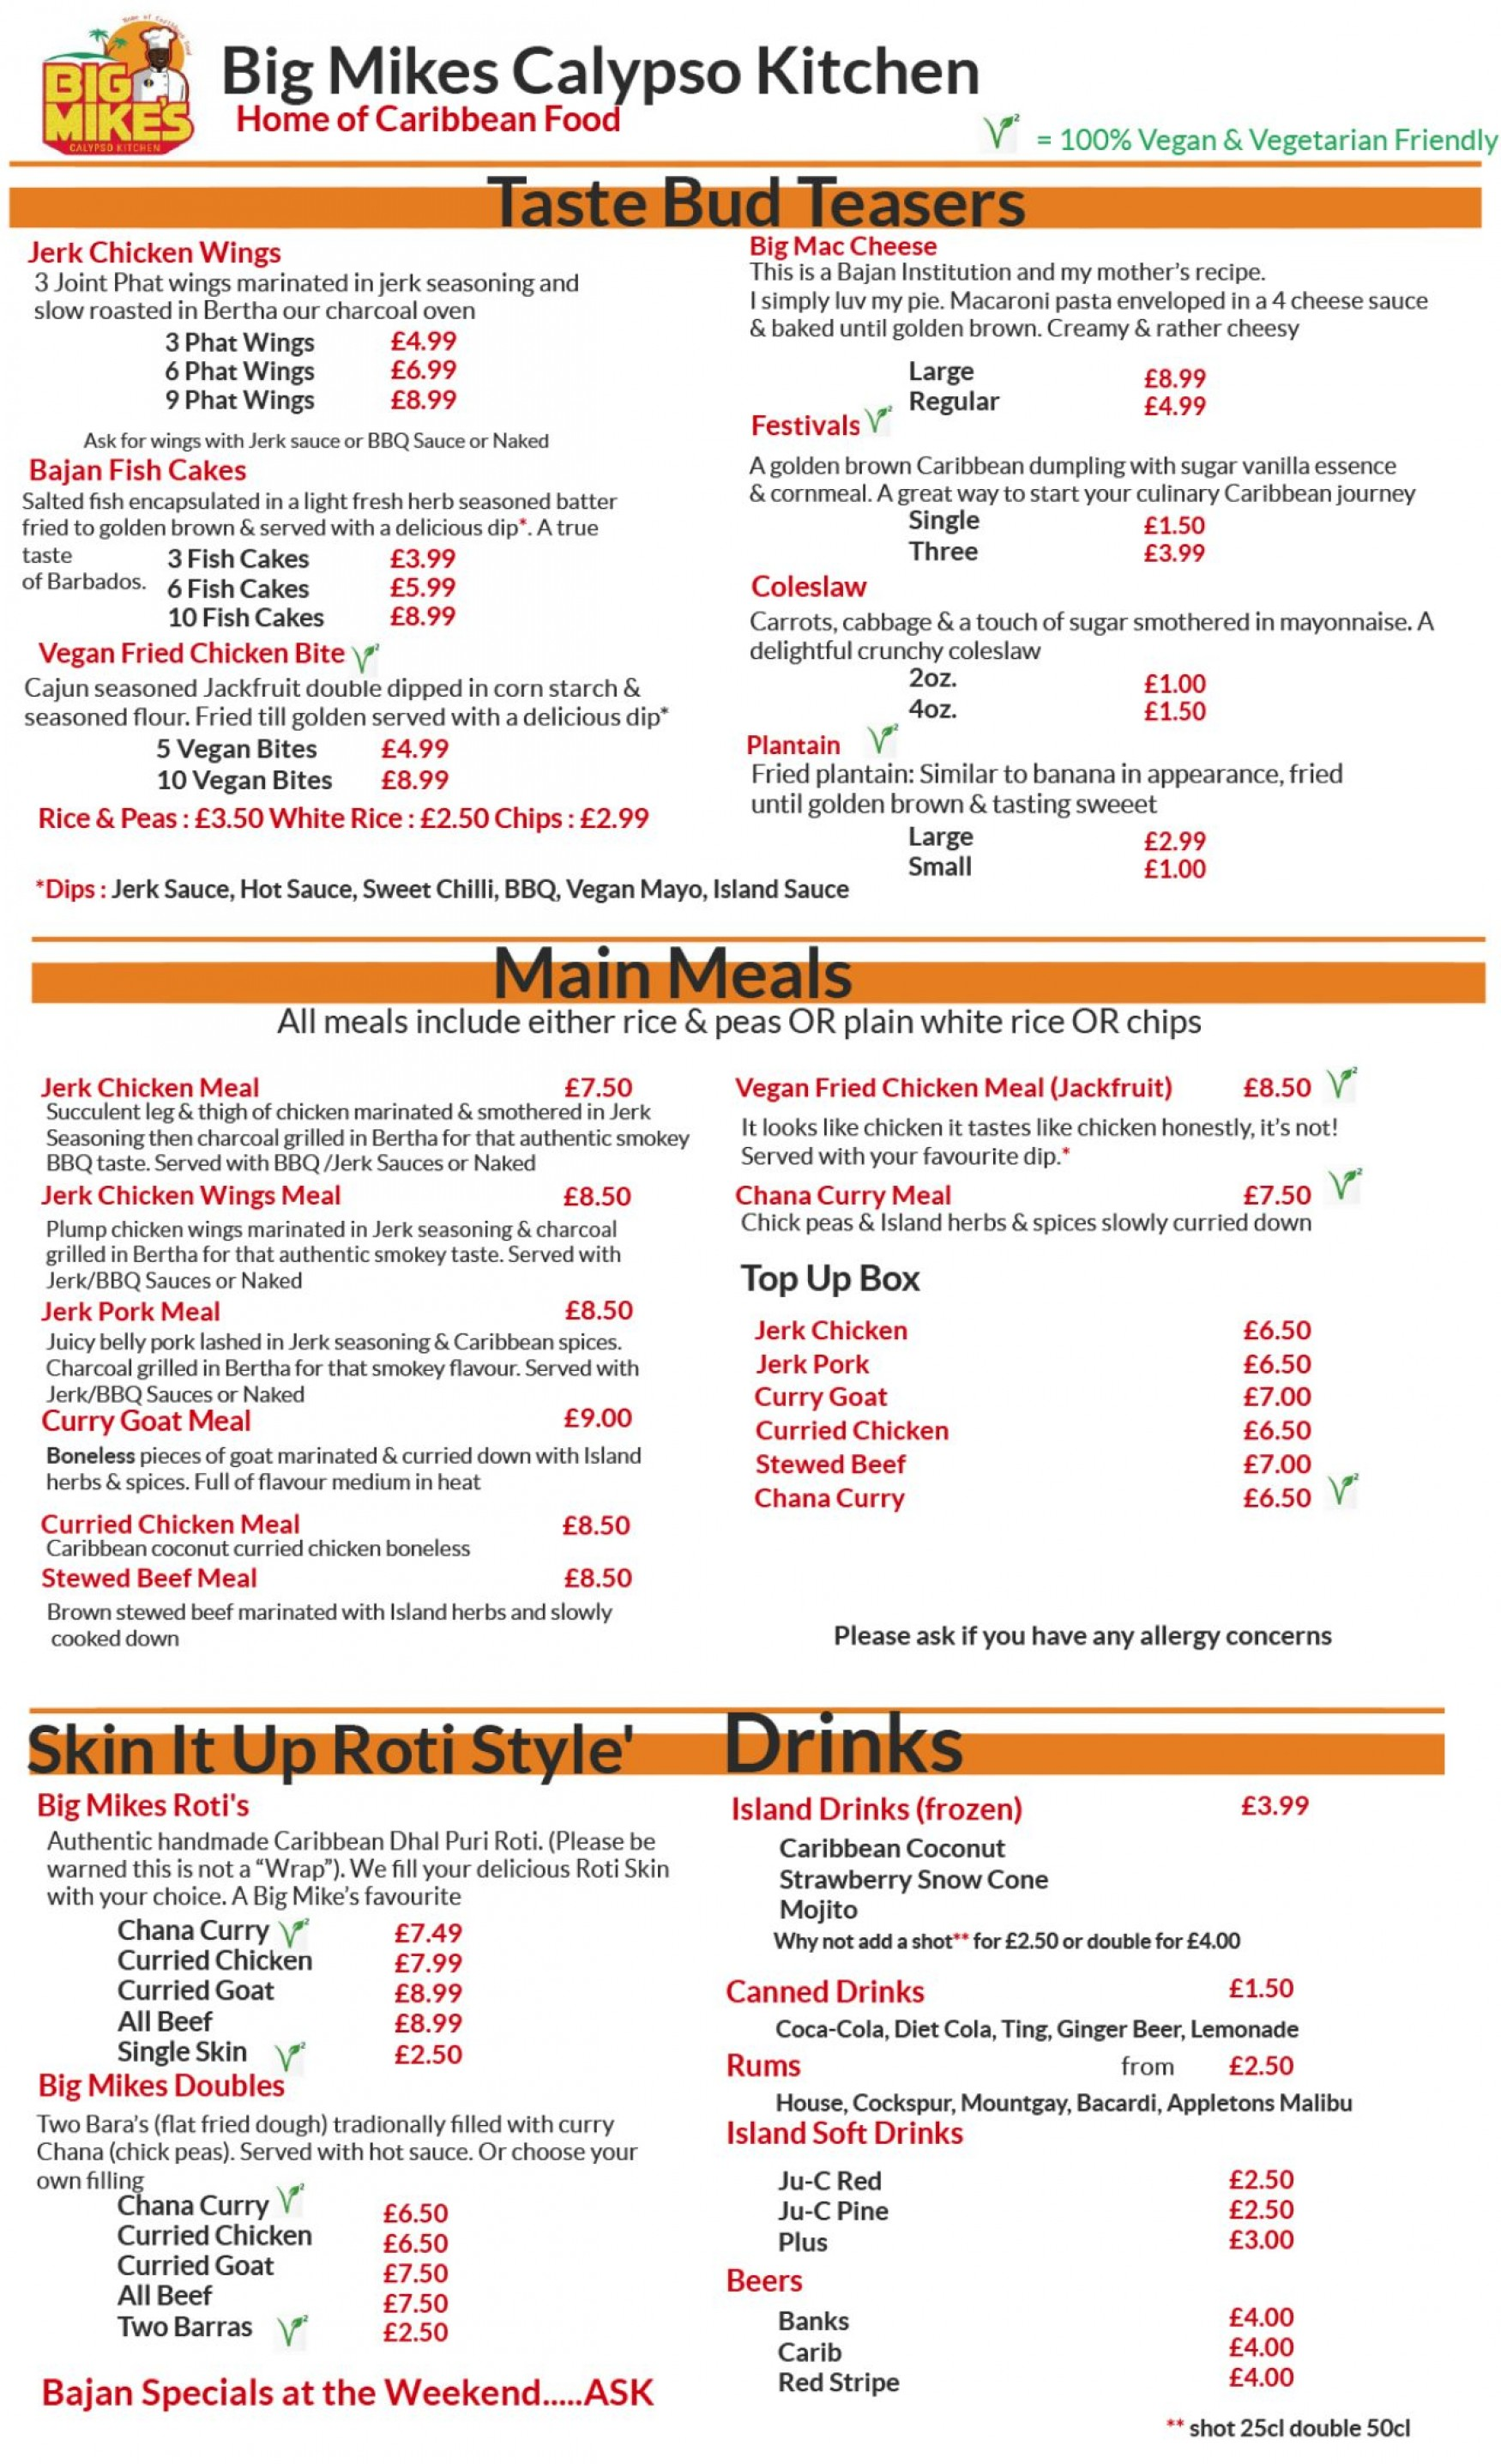 Big Mike's Calypso Kitchen menu